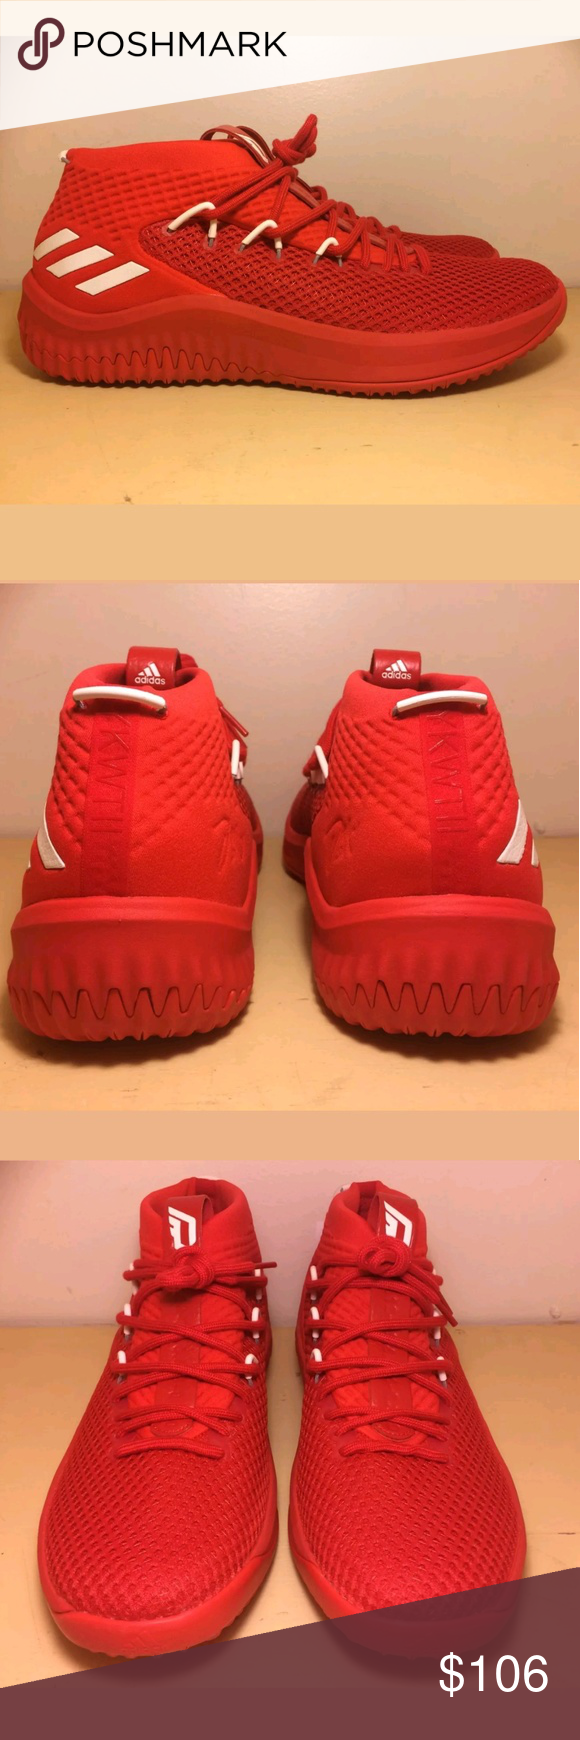 size 40 30975 8c0c2 Adidas Dame 4 red basketball shoes This item is a brand new pair of mens  Adidas